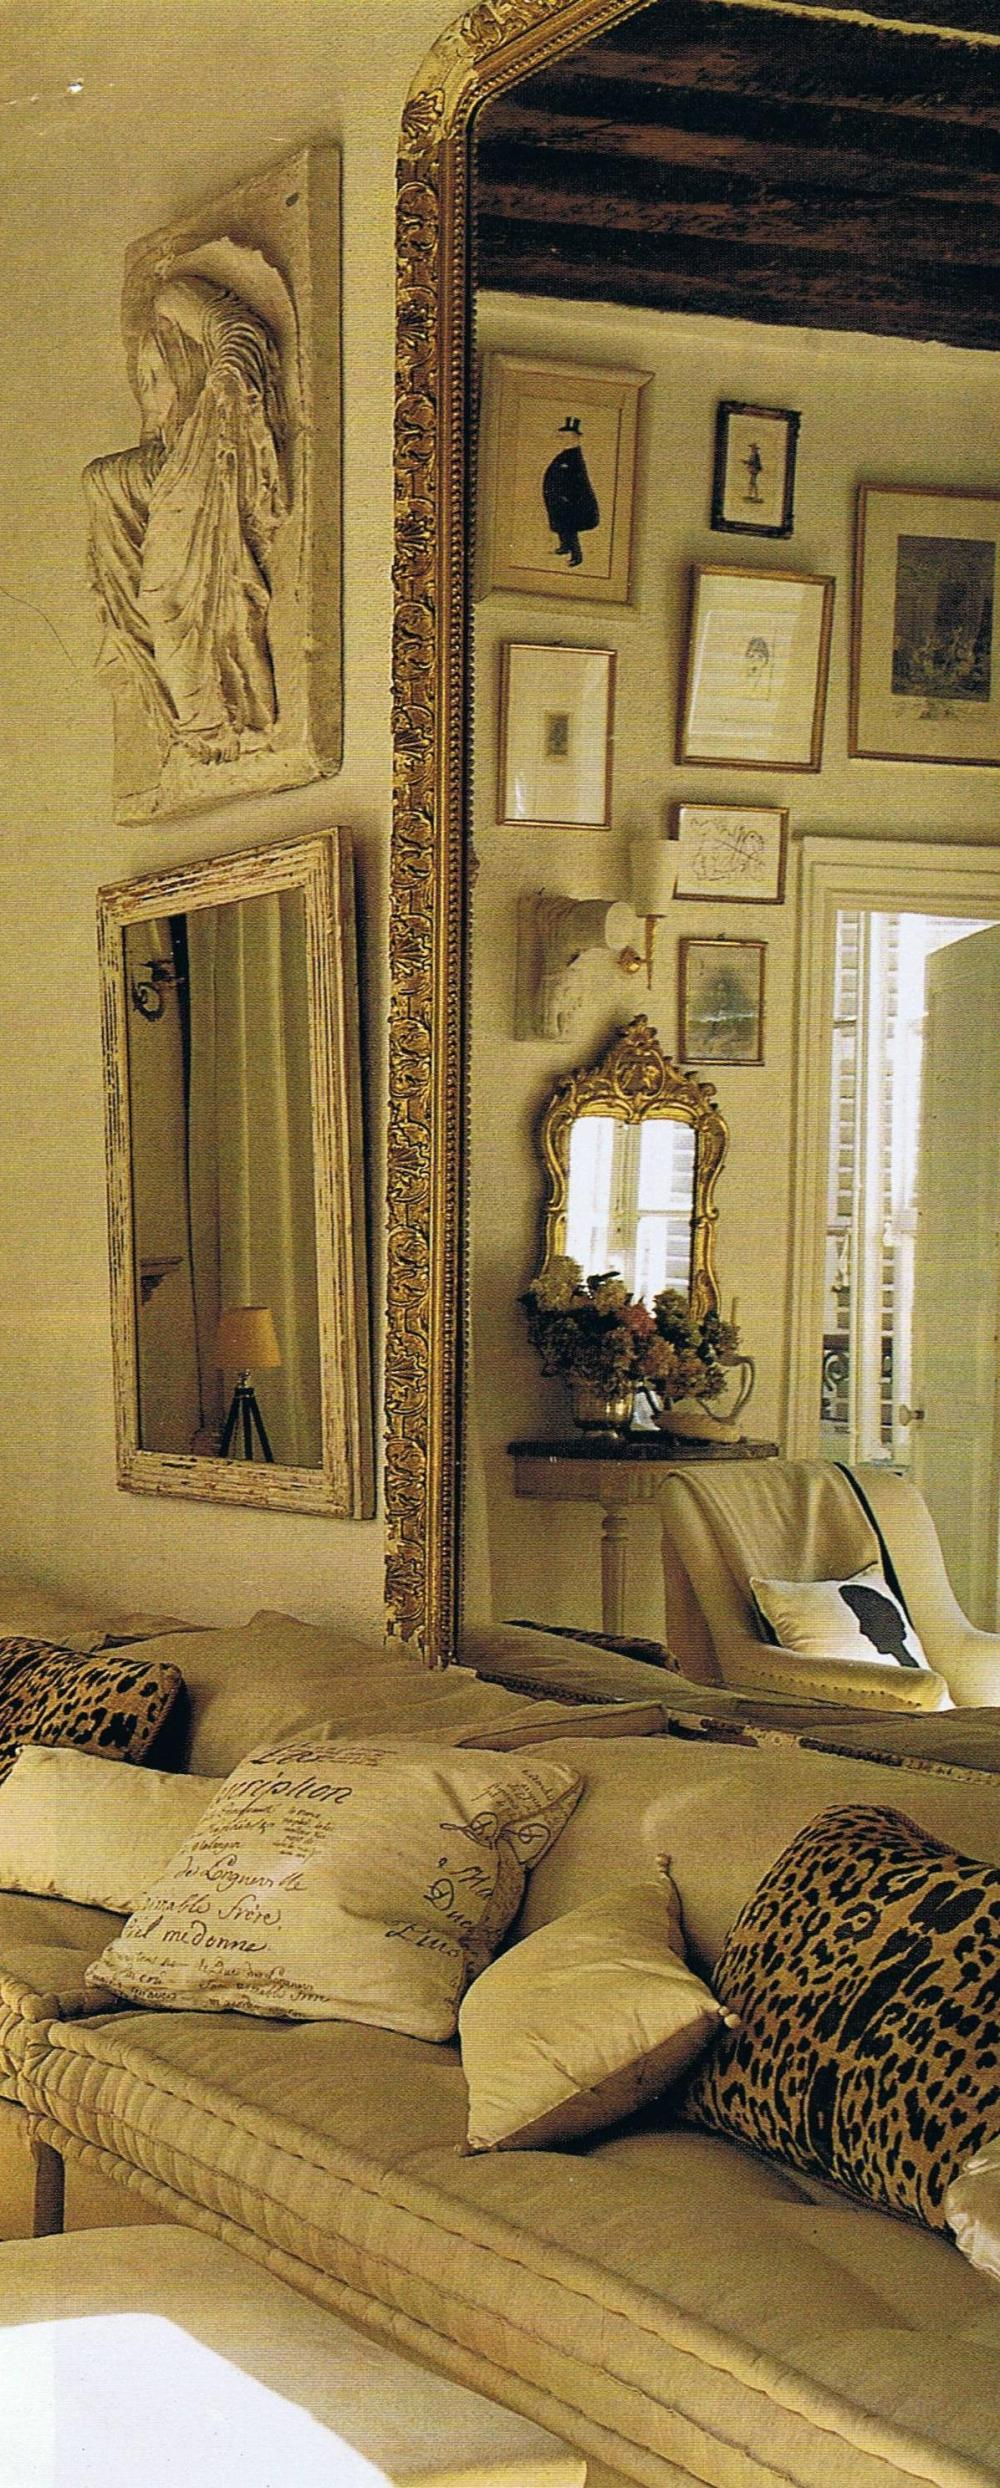 Paris apartment of Stephen Shubel